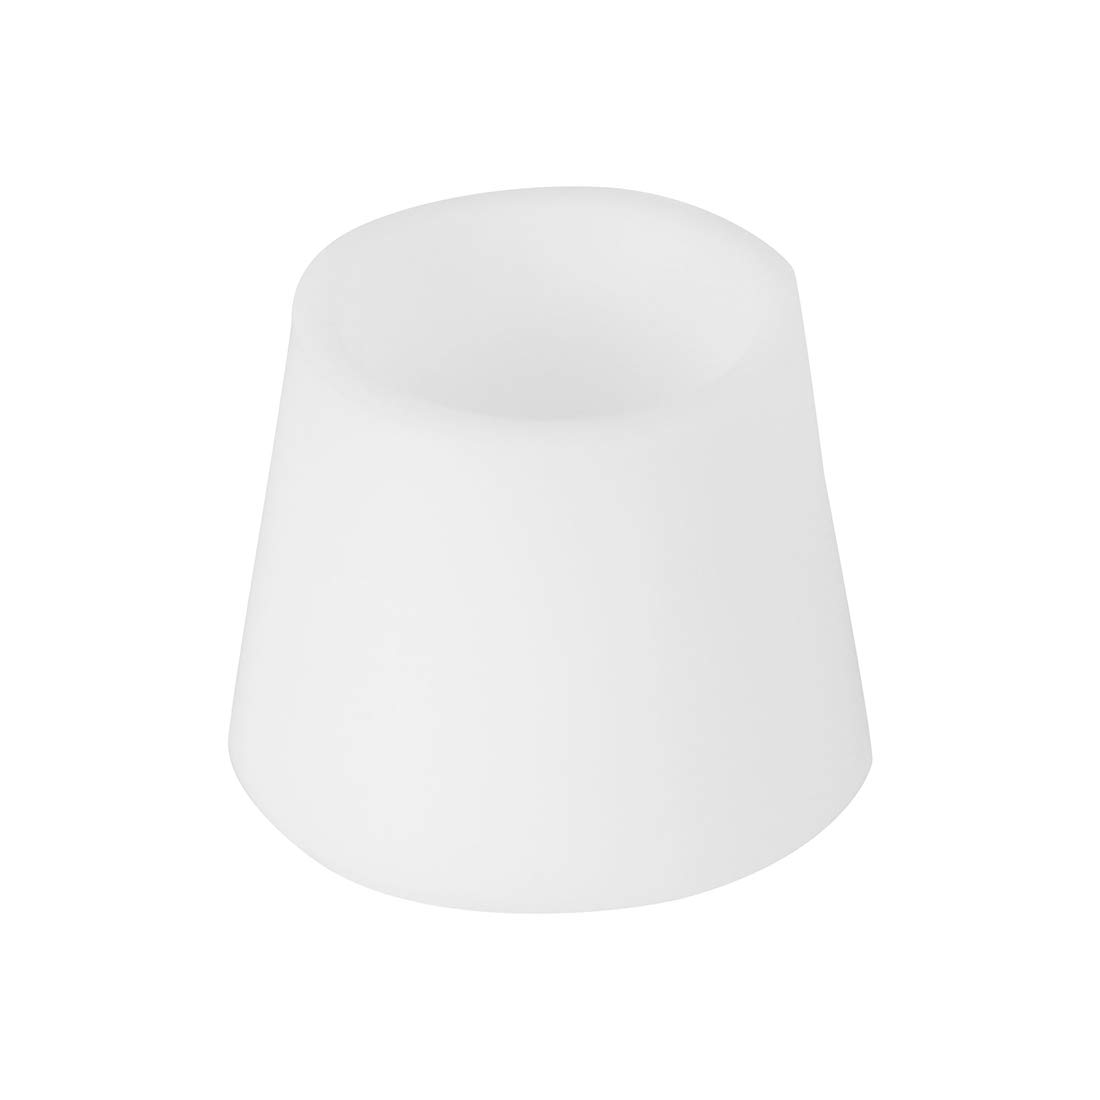 uxcell Leg Caps Tip Cup Feet Cover 20mm 3/4'' Inner Dia for Chair Rubber